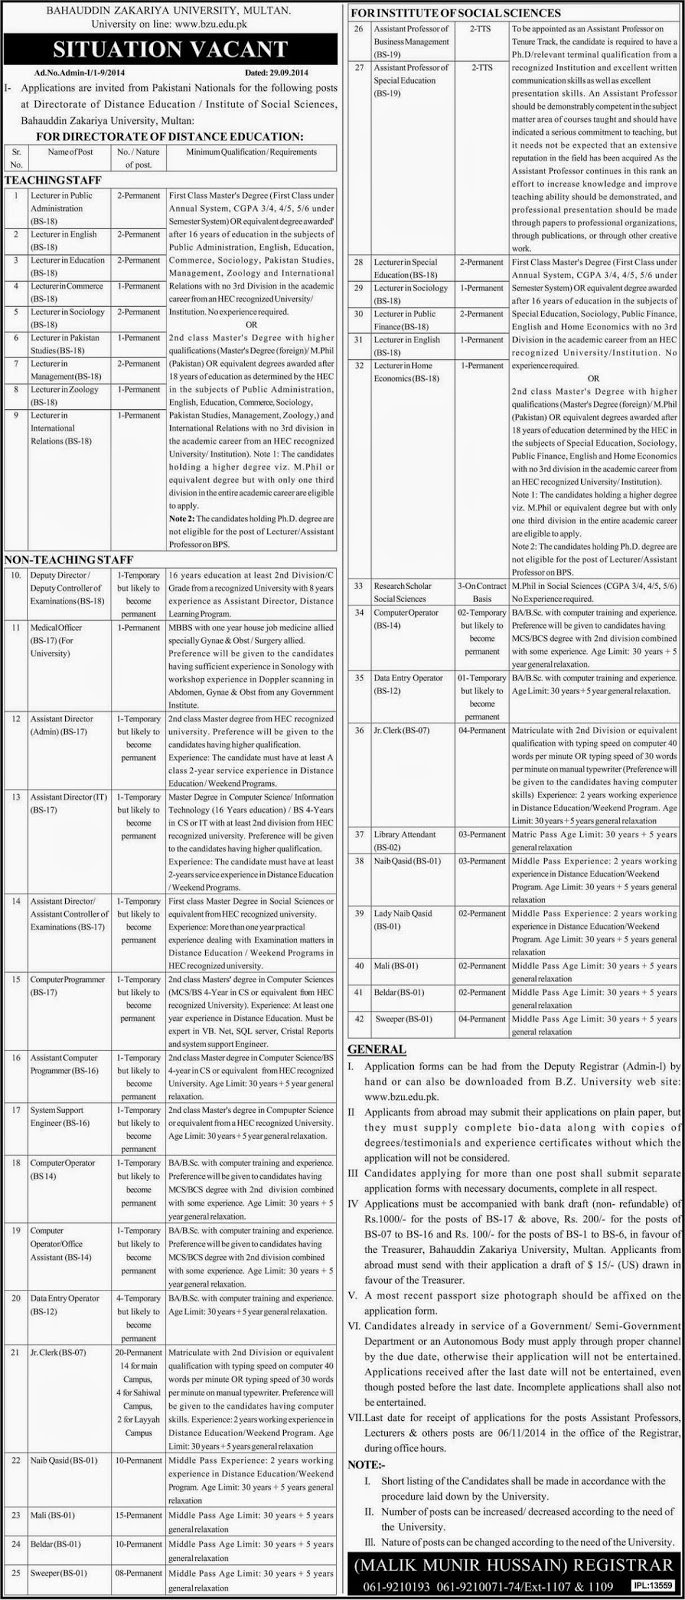 Medical Officer, Deputy Director, and Assistant Director Jobs in Bahauddin Zakariya University, Multan